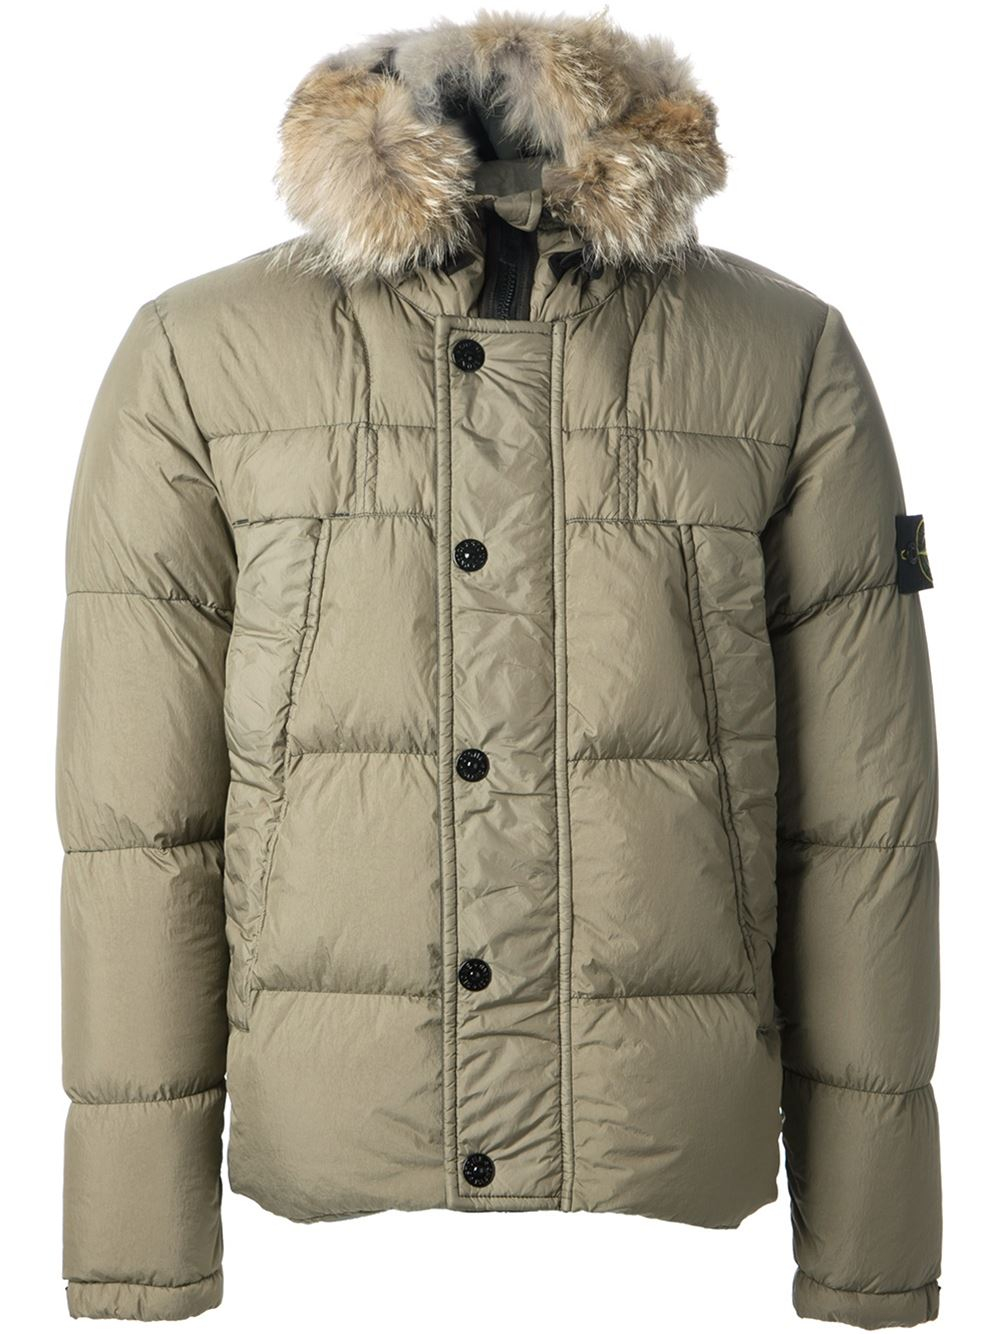 Stone Island Fur Trimmed Padded Jacket In Natural For Men